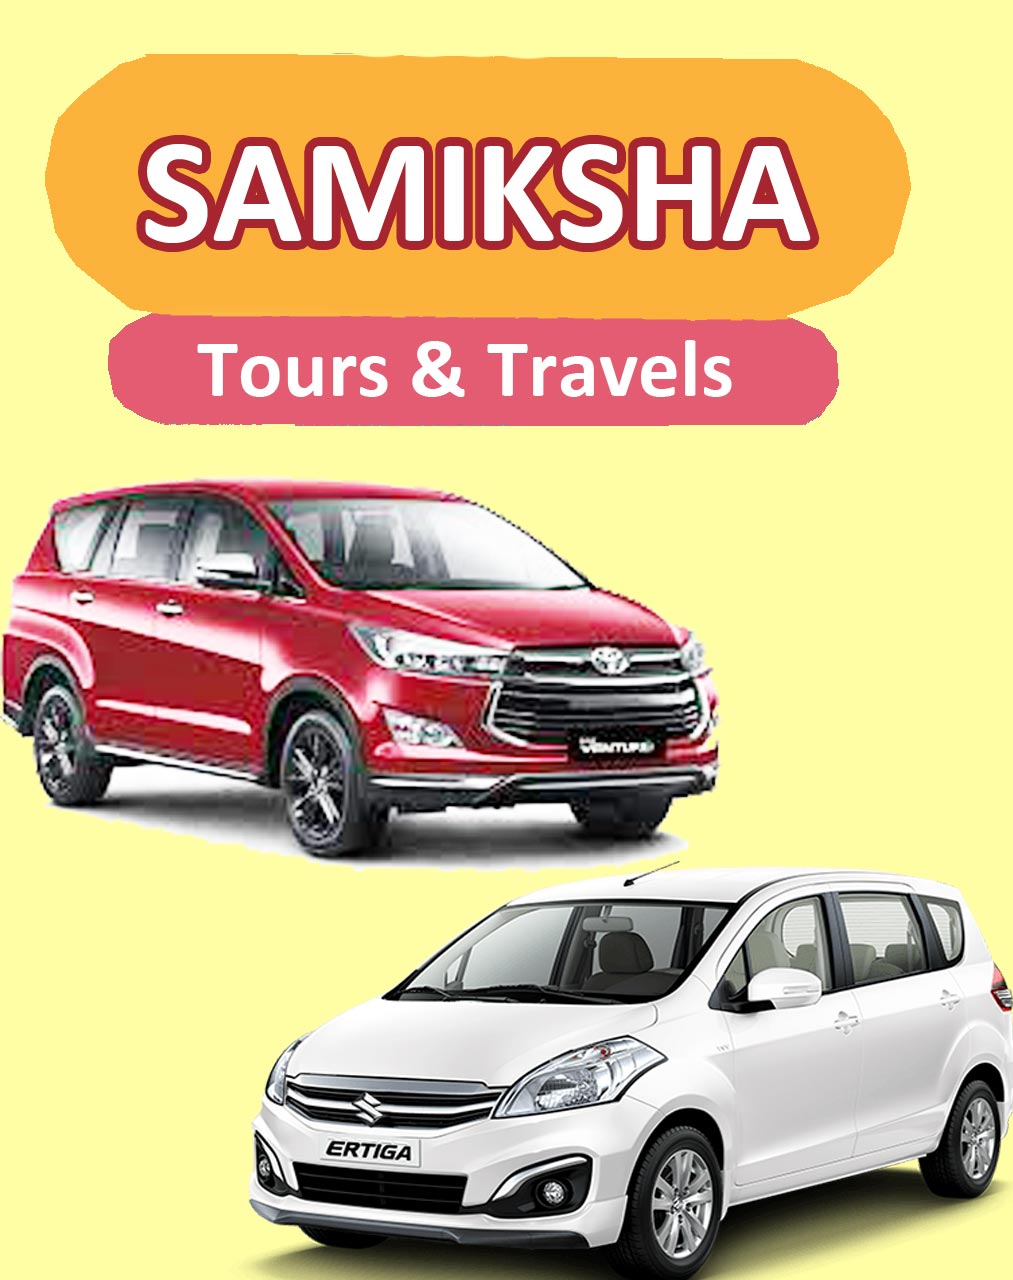 SAMIKSHA TOURS & TRAVELS